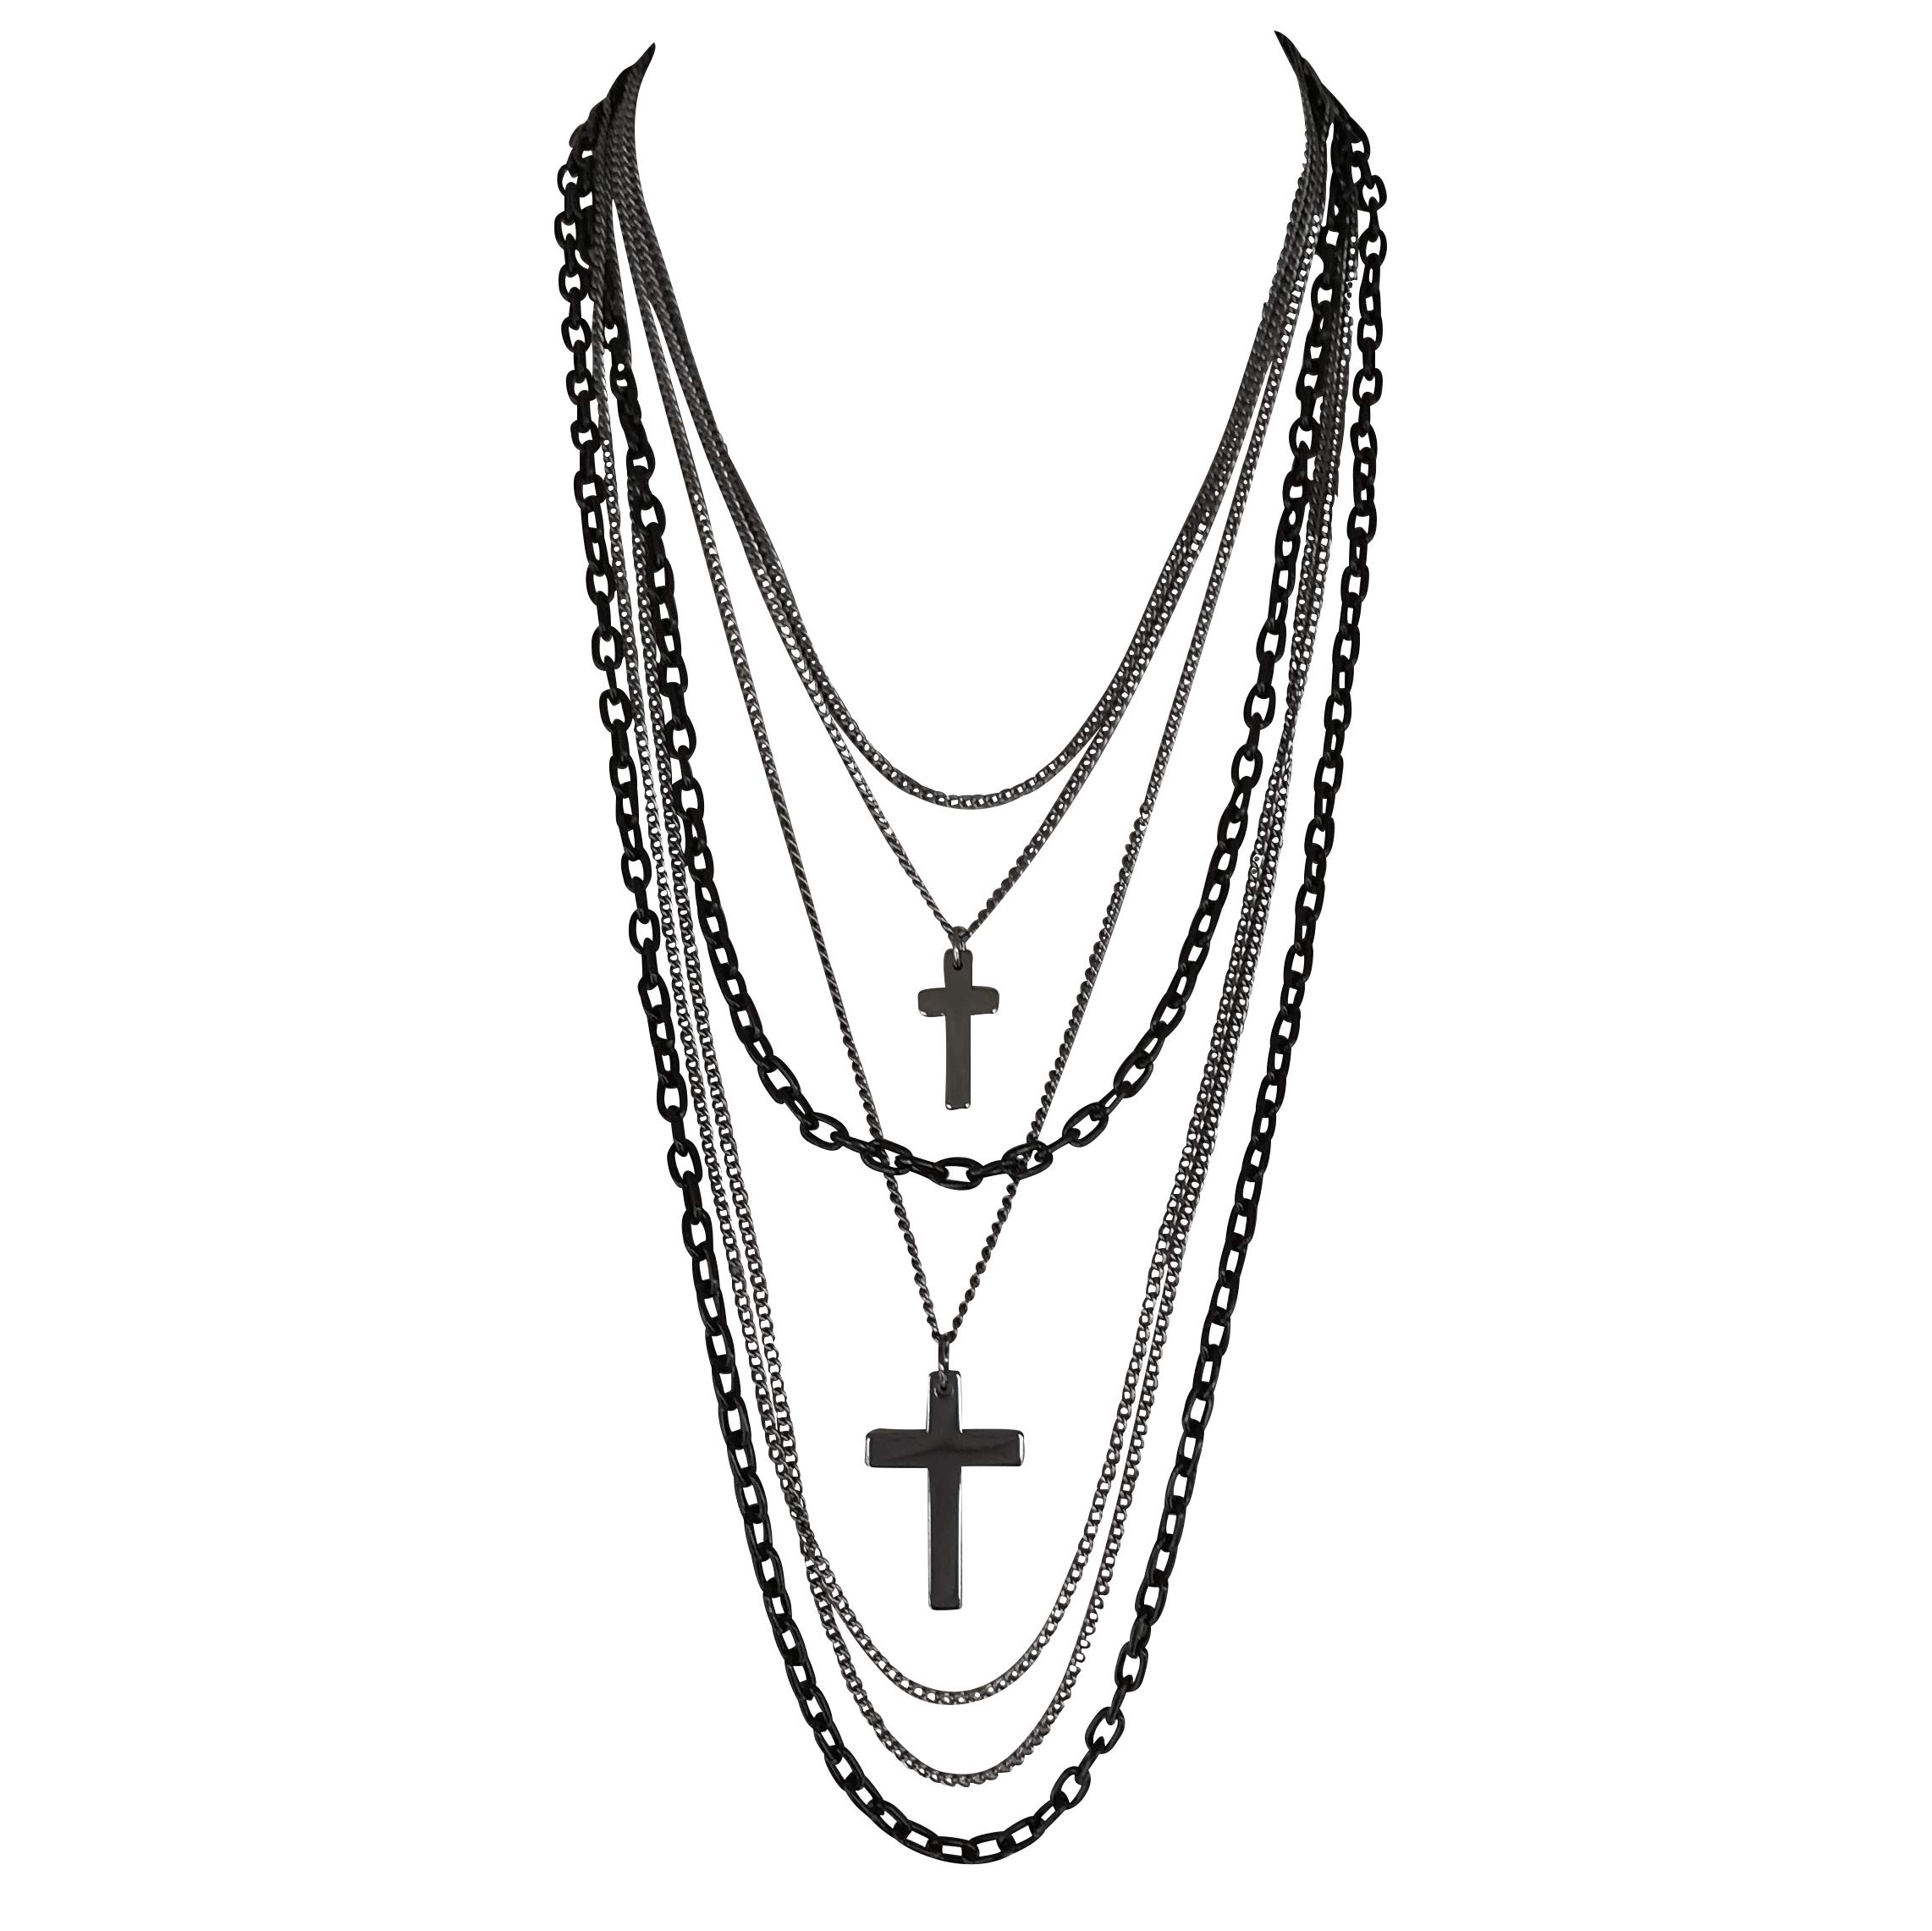 DragonWeave Multilayer Retro 80s Gothic Black and Gunmetal Chain Long Fashion Necklace with Crosses by DragonWeave